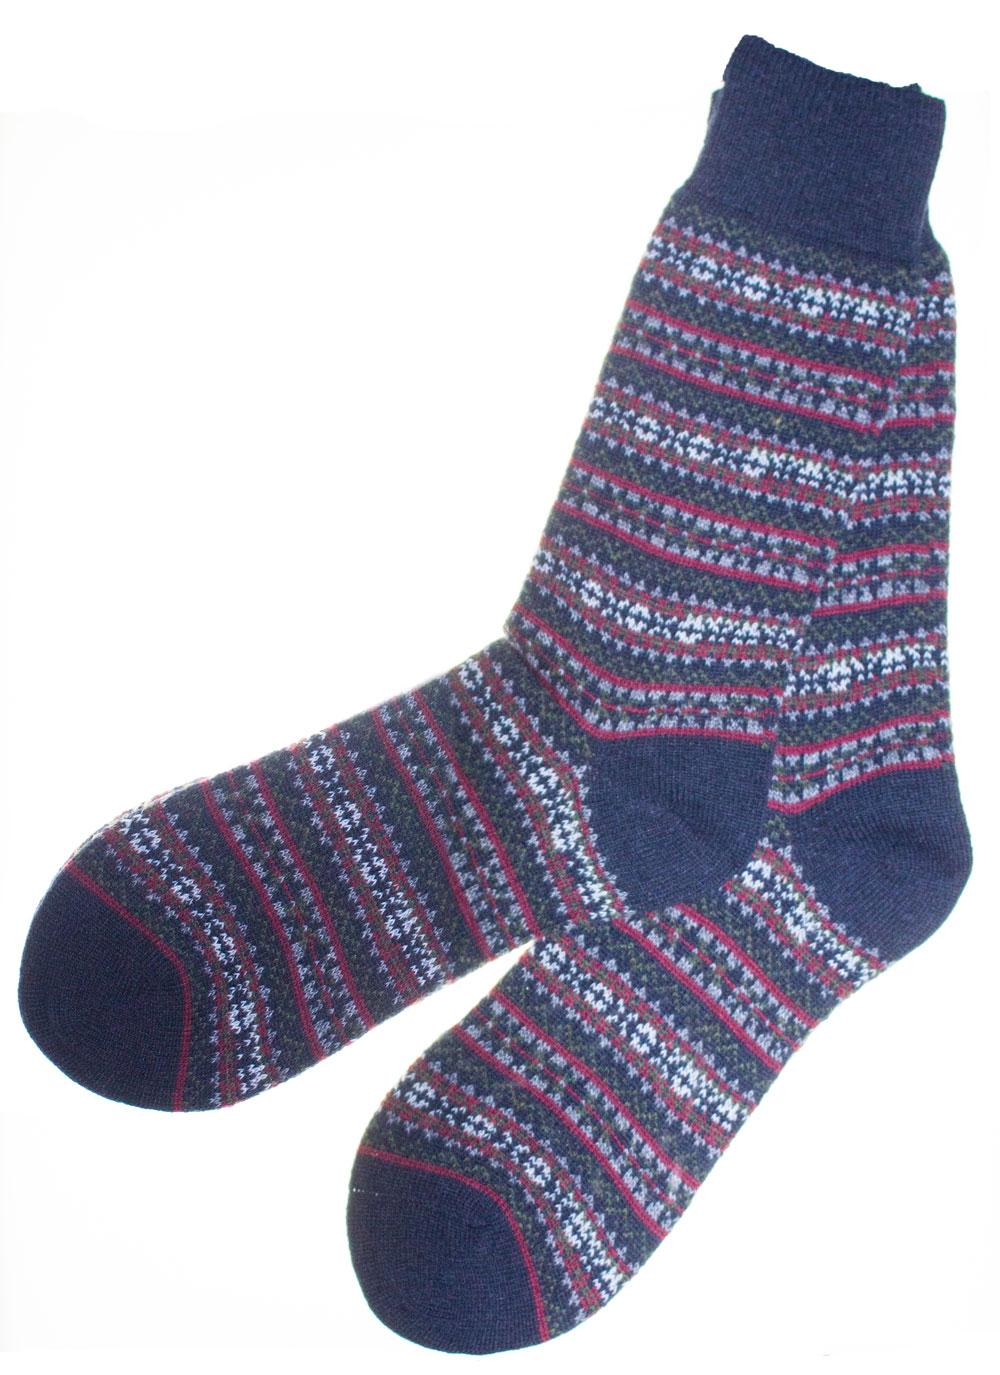 We'll practice by making a wee sock, stranding while picking up tips and techniques. We'll learn to read charts, make a simple heel that makes Fair Isle work easy .